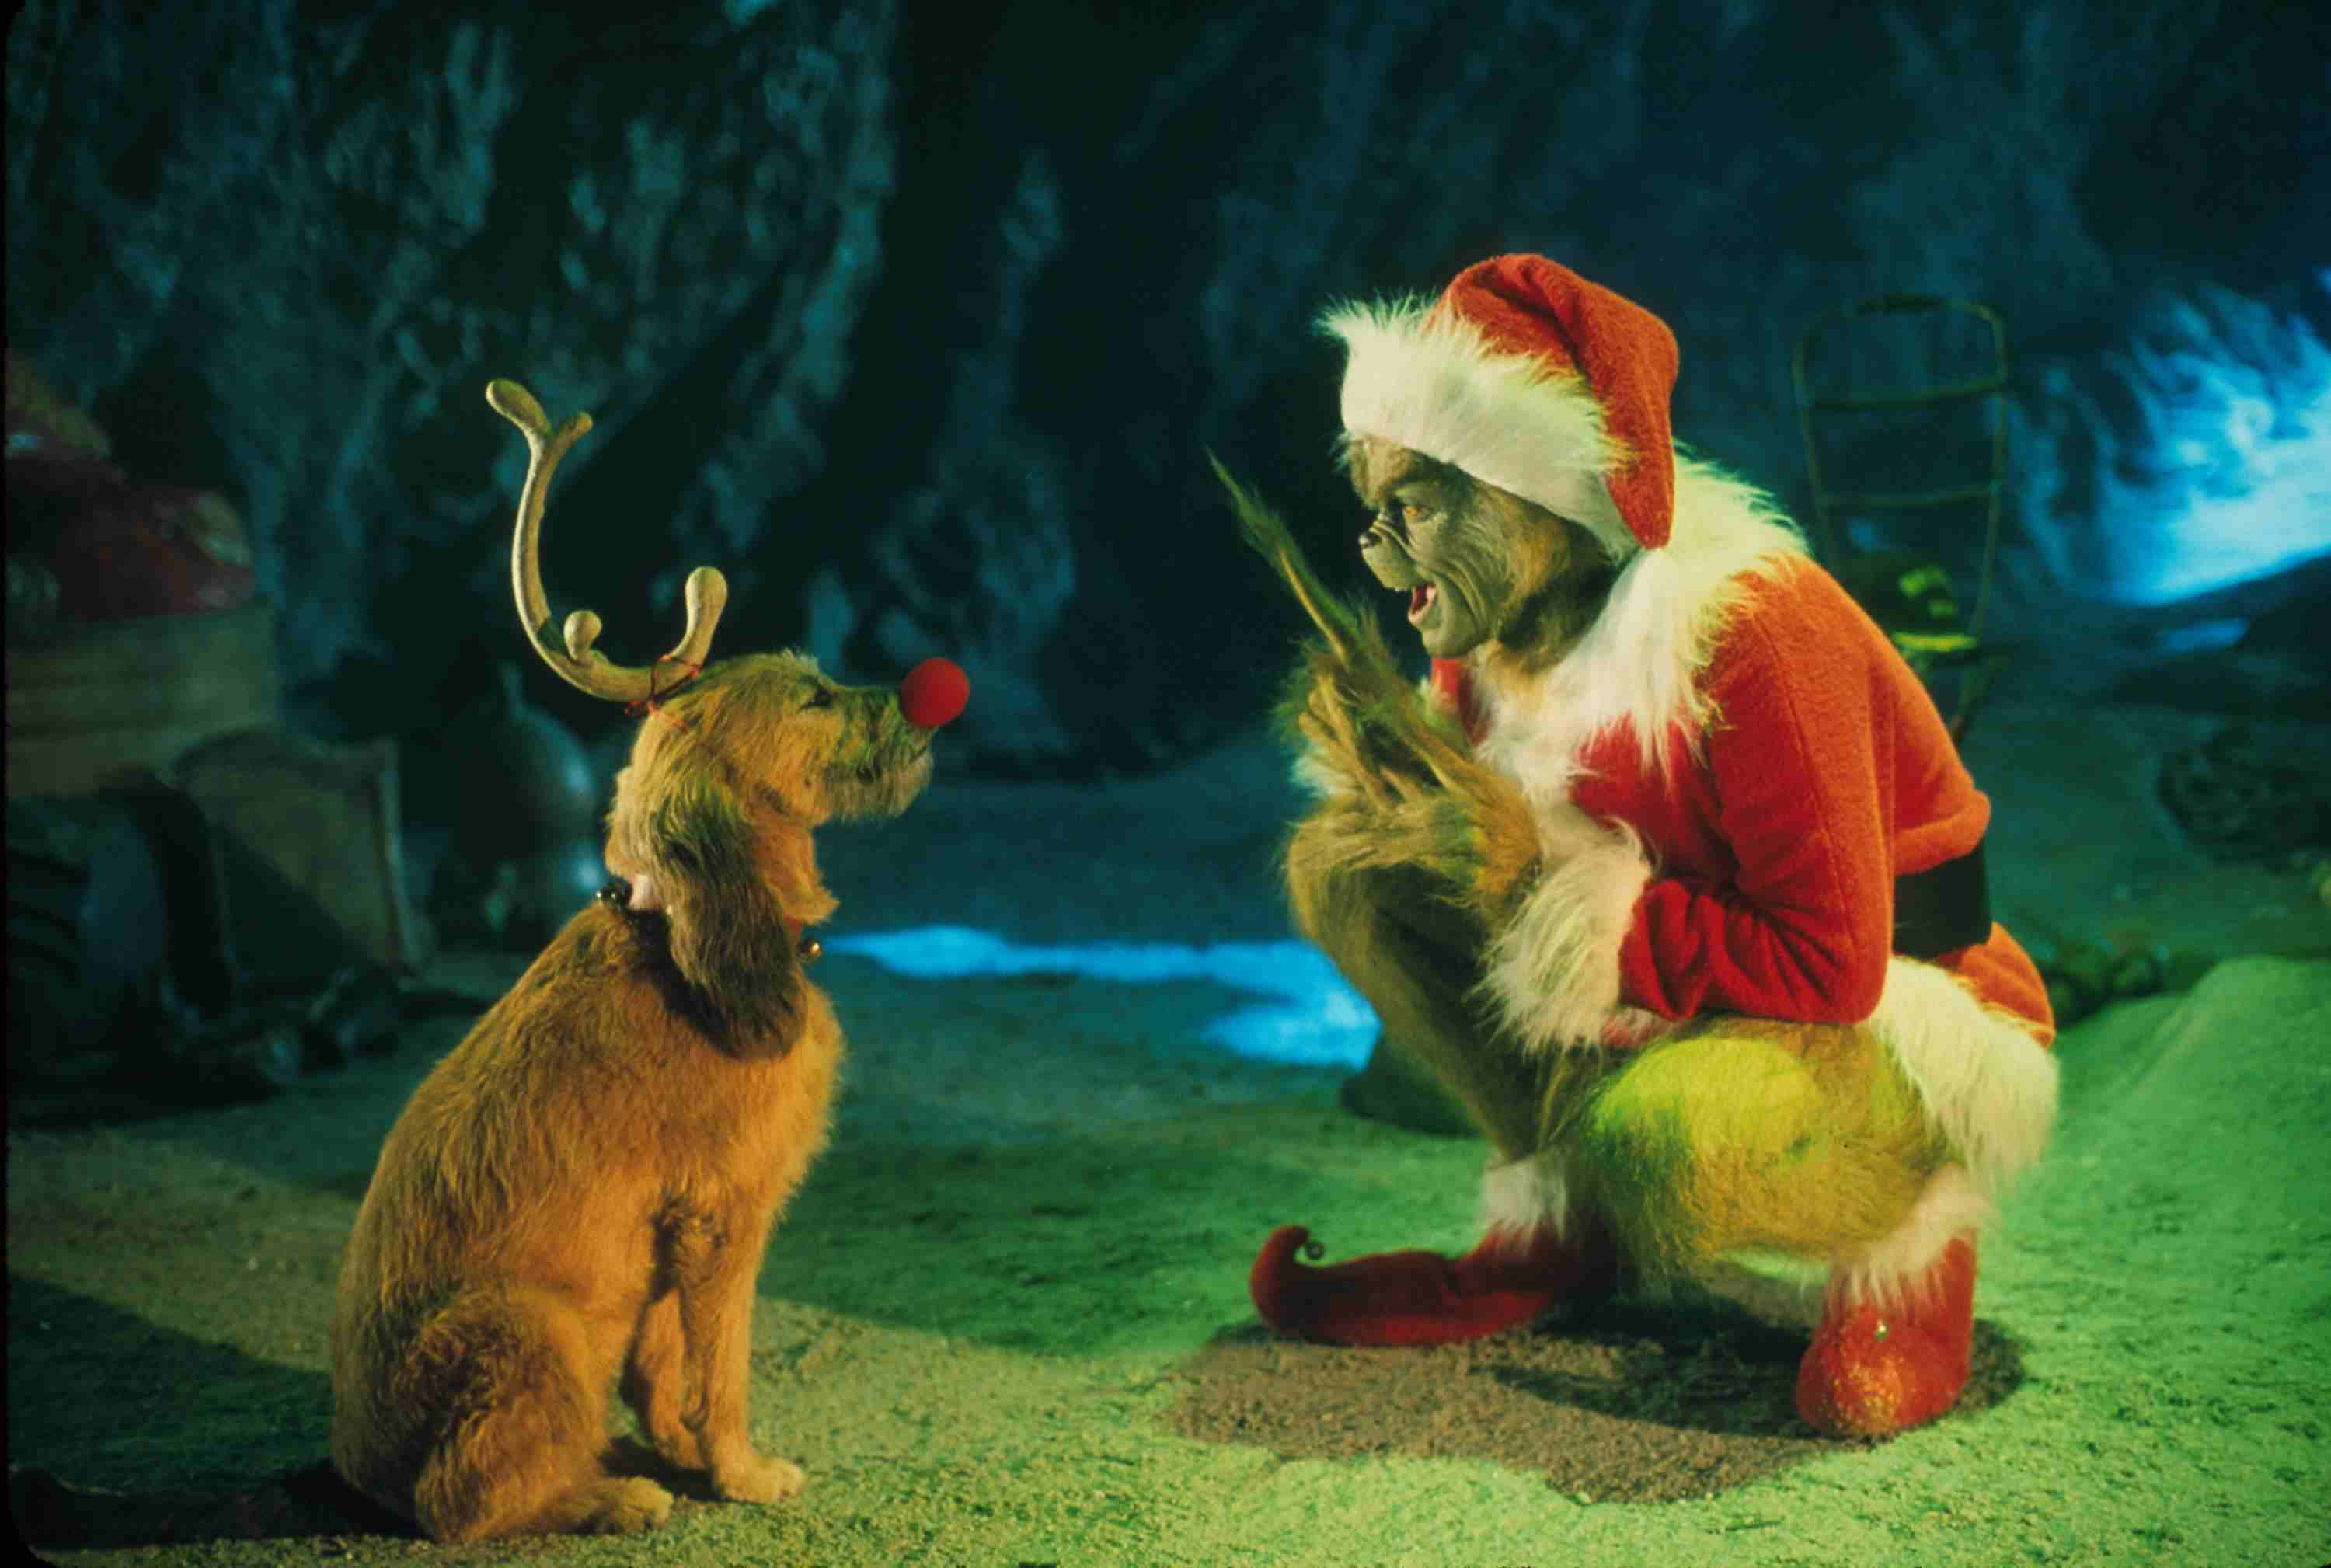 The Grinch Played By Jim Carrey Conspires With His Dog Max To Deprive The Who's Of Thei